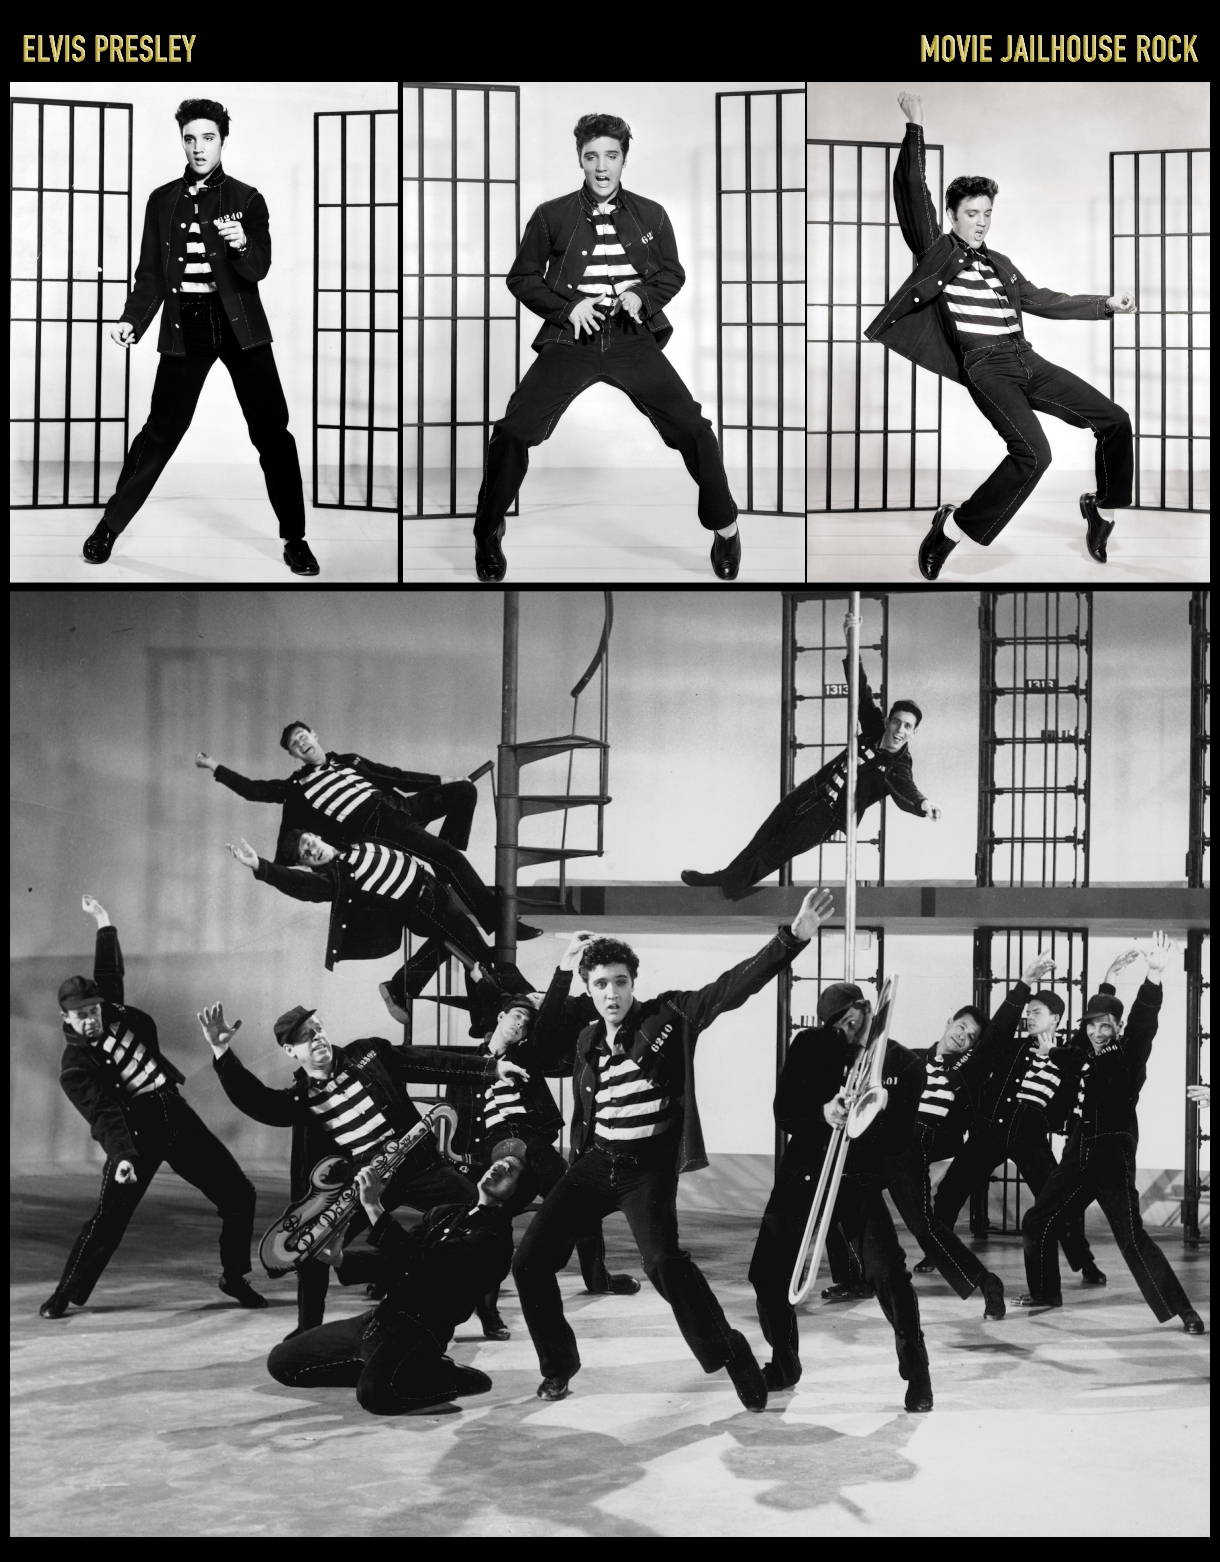 571012_Elvis Presley_Jailhouse Rock_Movie